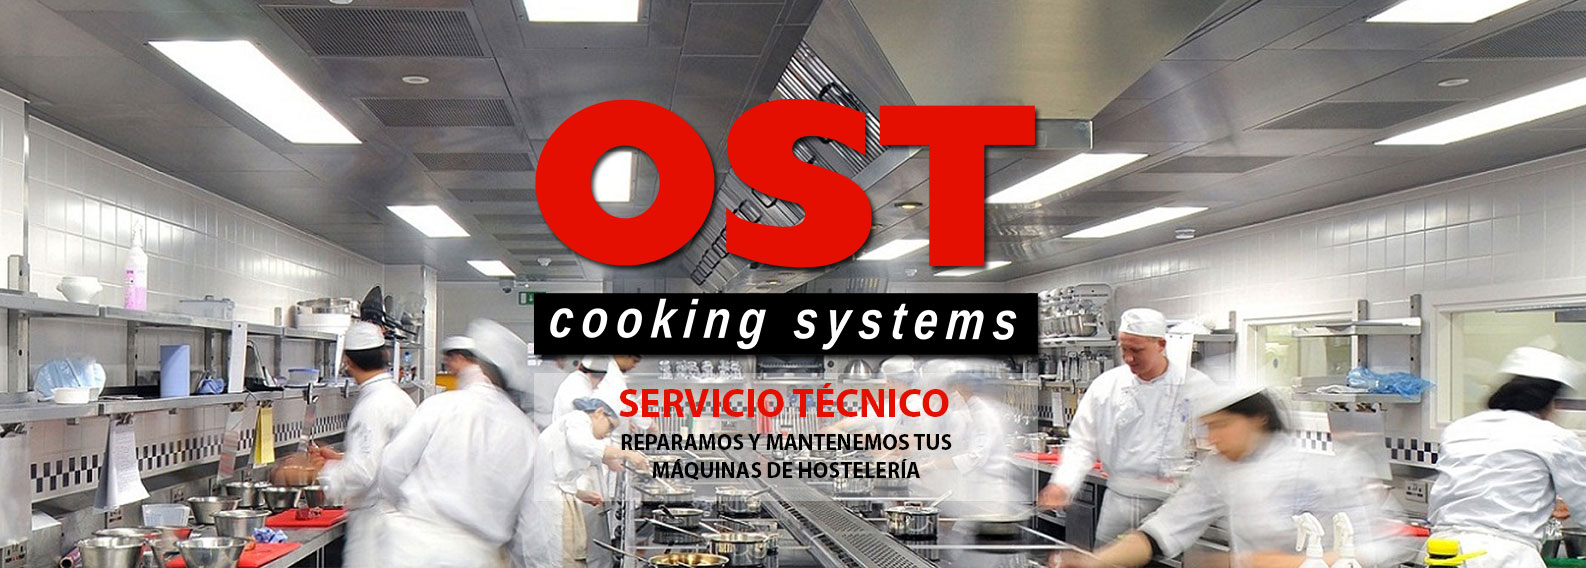 ost_cooking_b5